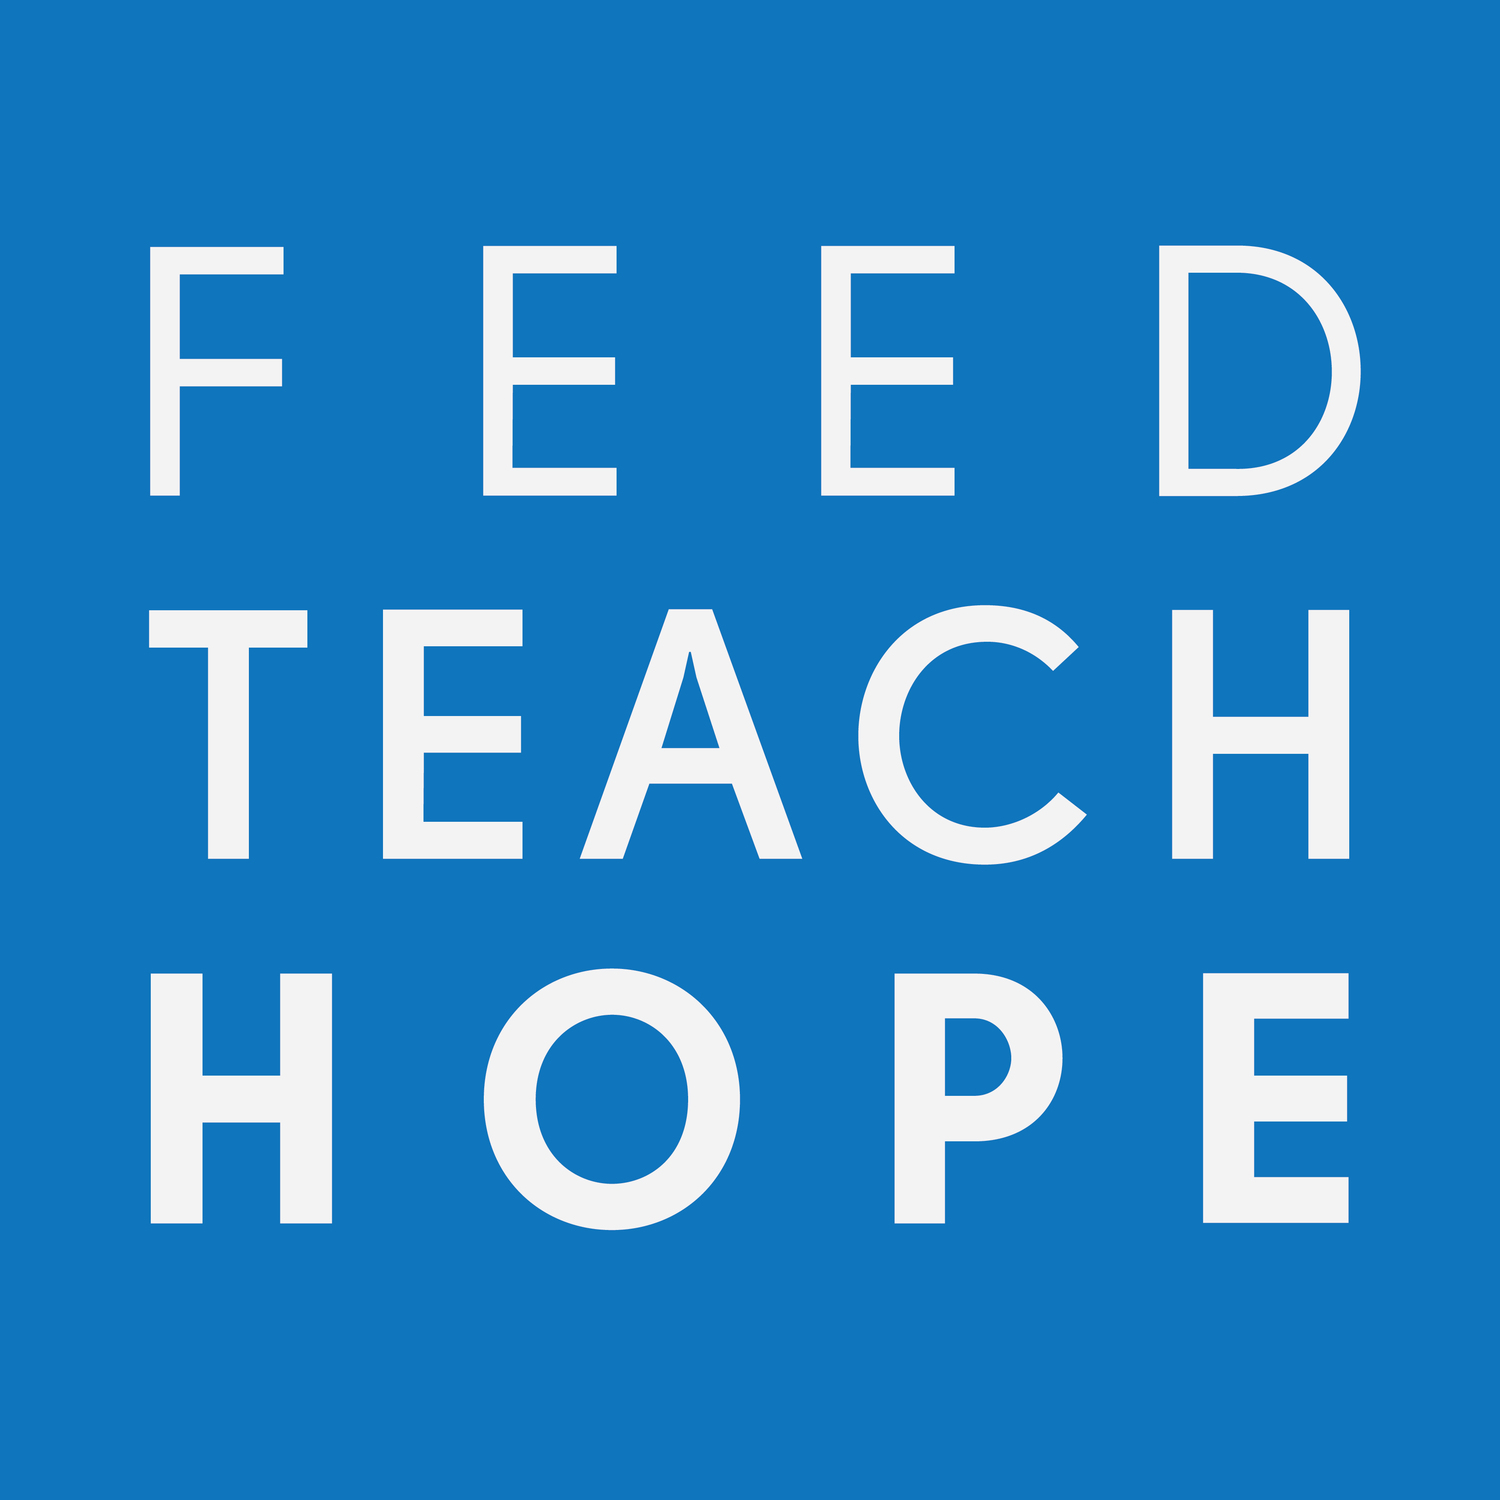 Feed. Teach. Hope.